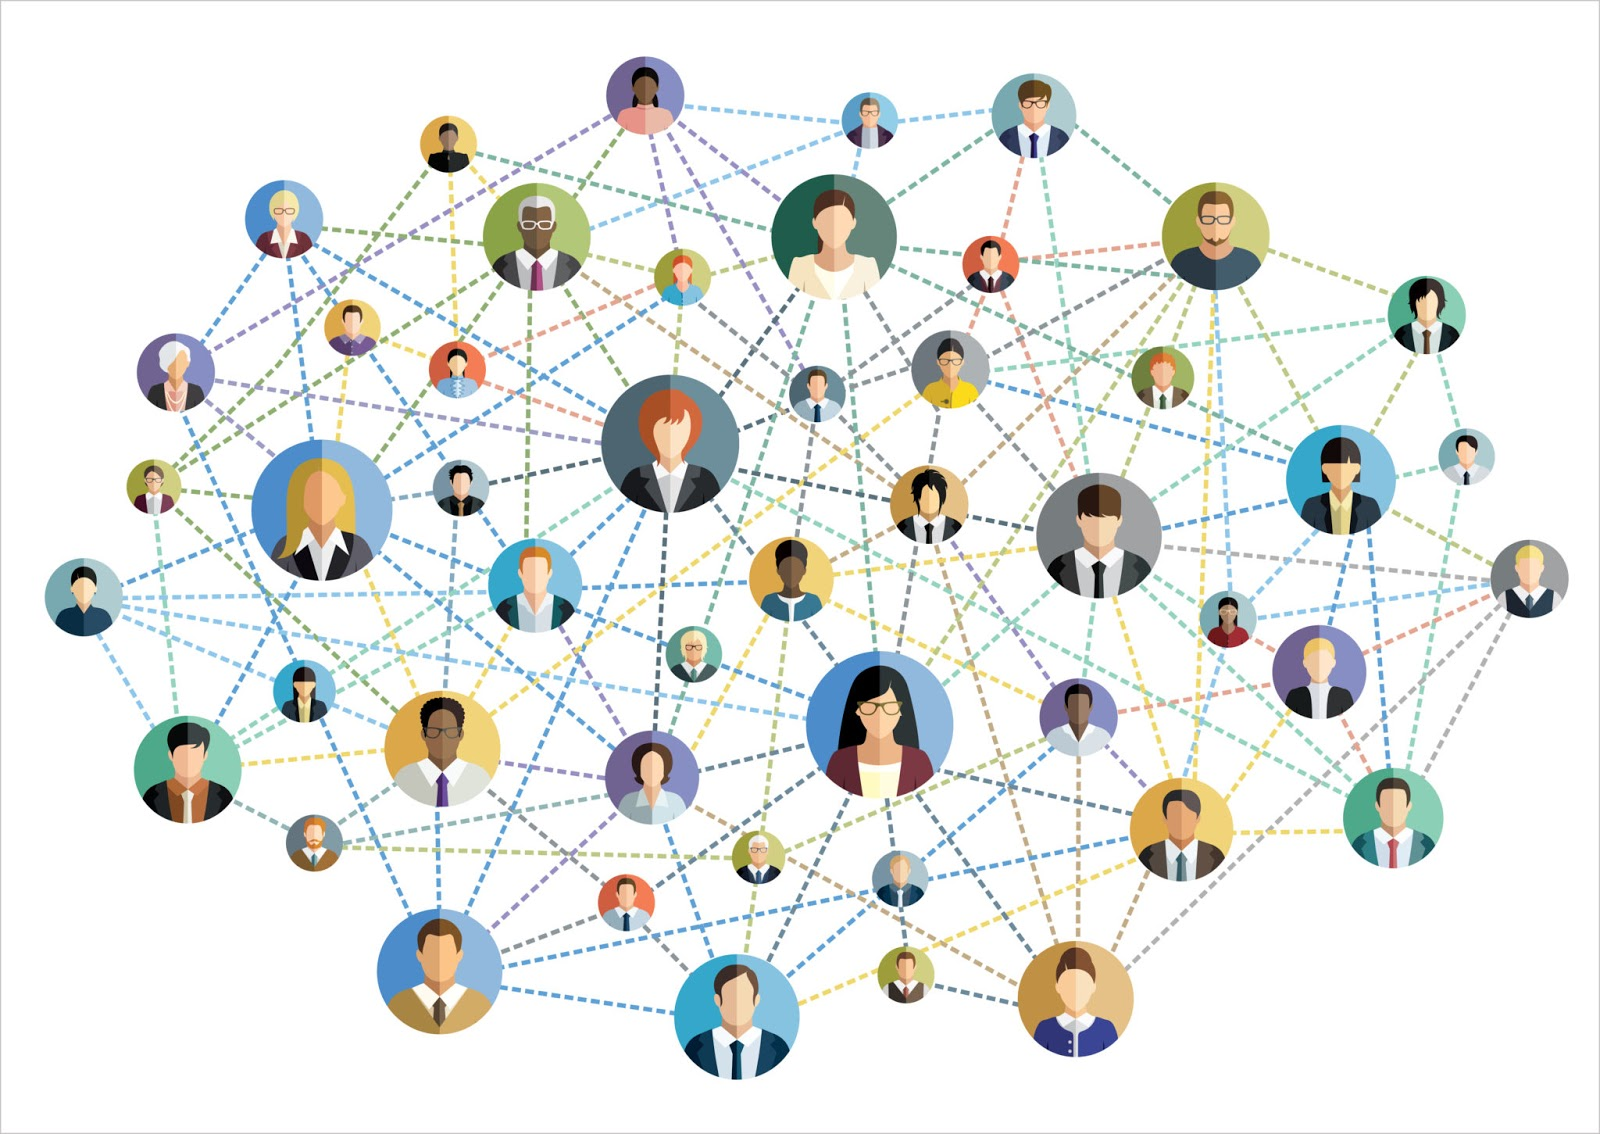 A graphic design of faceless people in a web of a network.